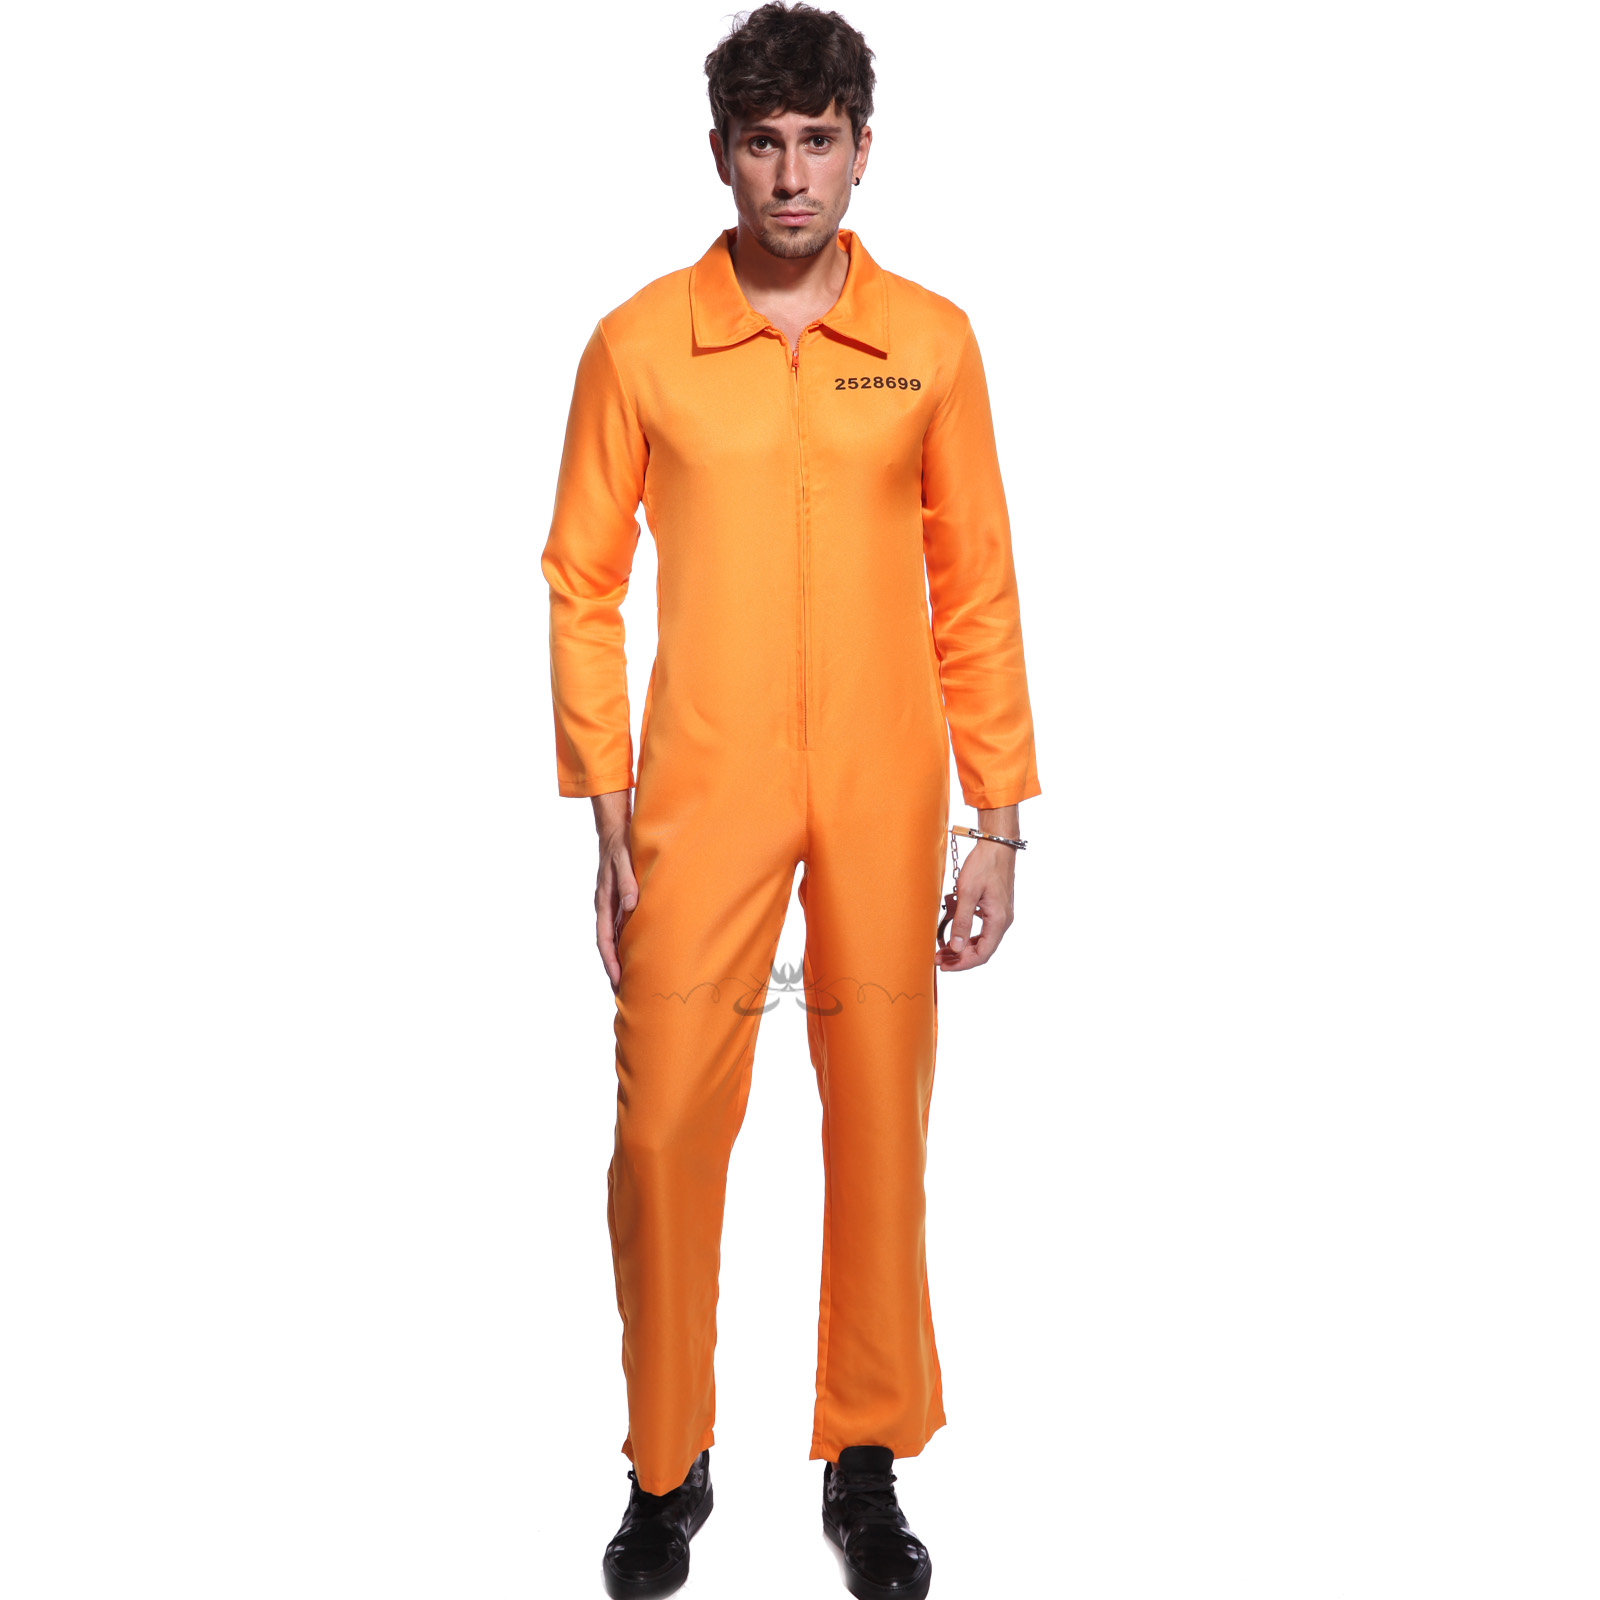 Simple 17 Ideas About Inmate Costume On Pinterest  Sexy Costumes For Women